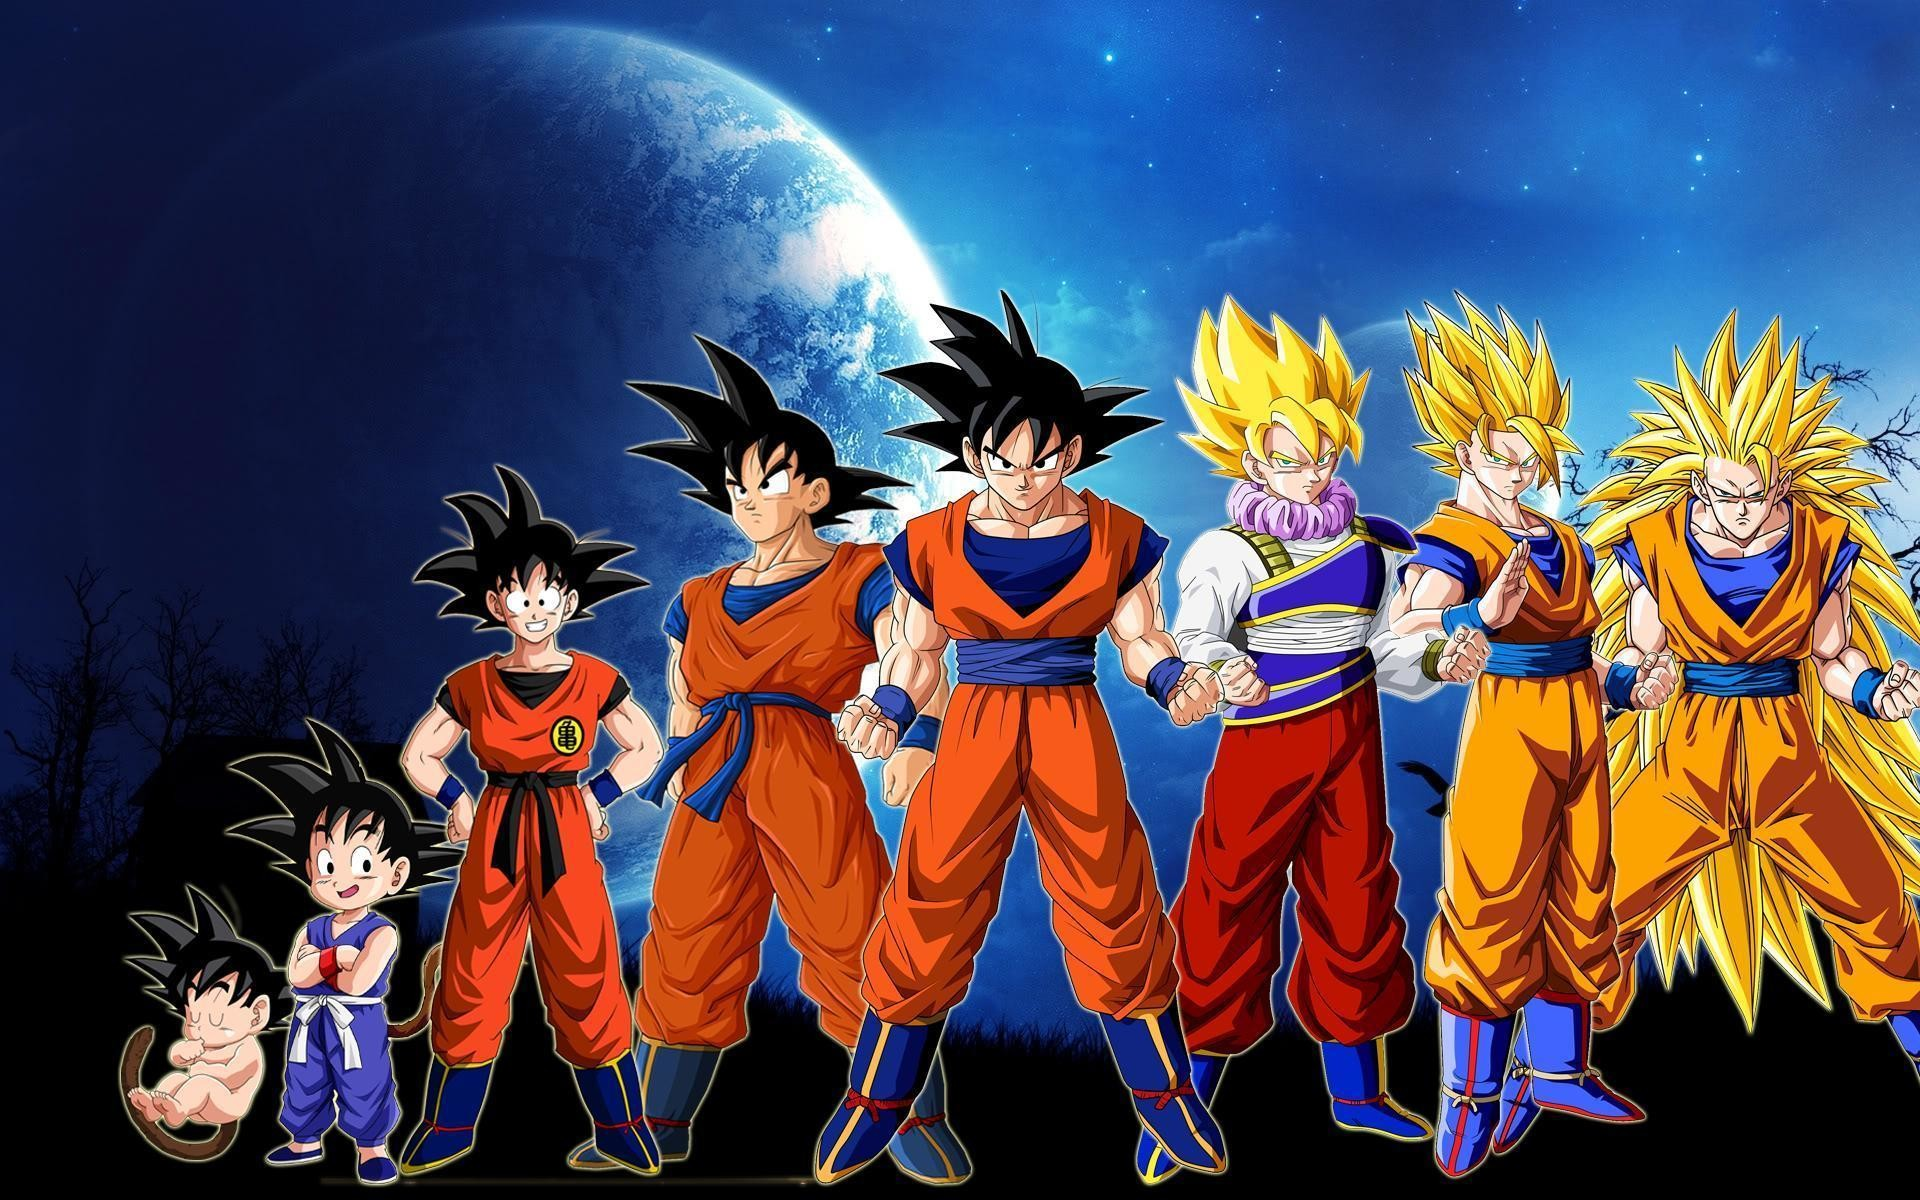 1920x1200 Dragon Ball Z Goku Story Wallpaper For Iphone | Cartoons Images